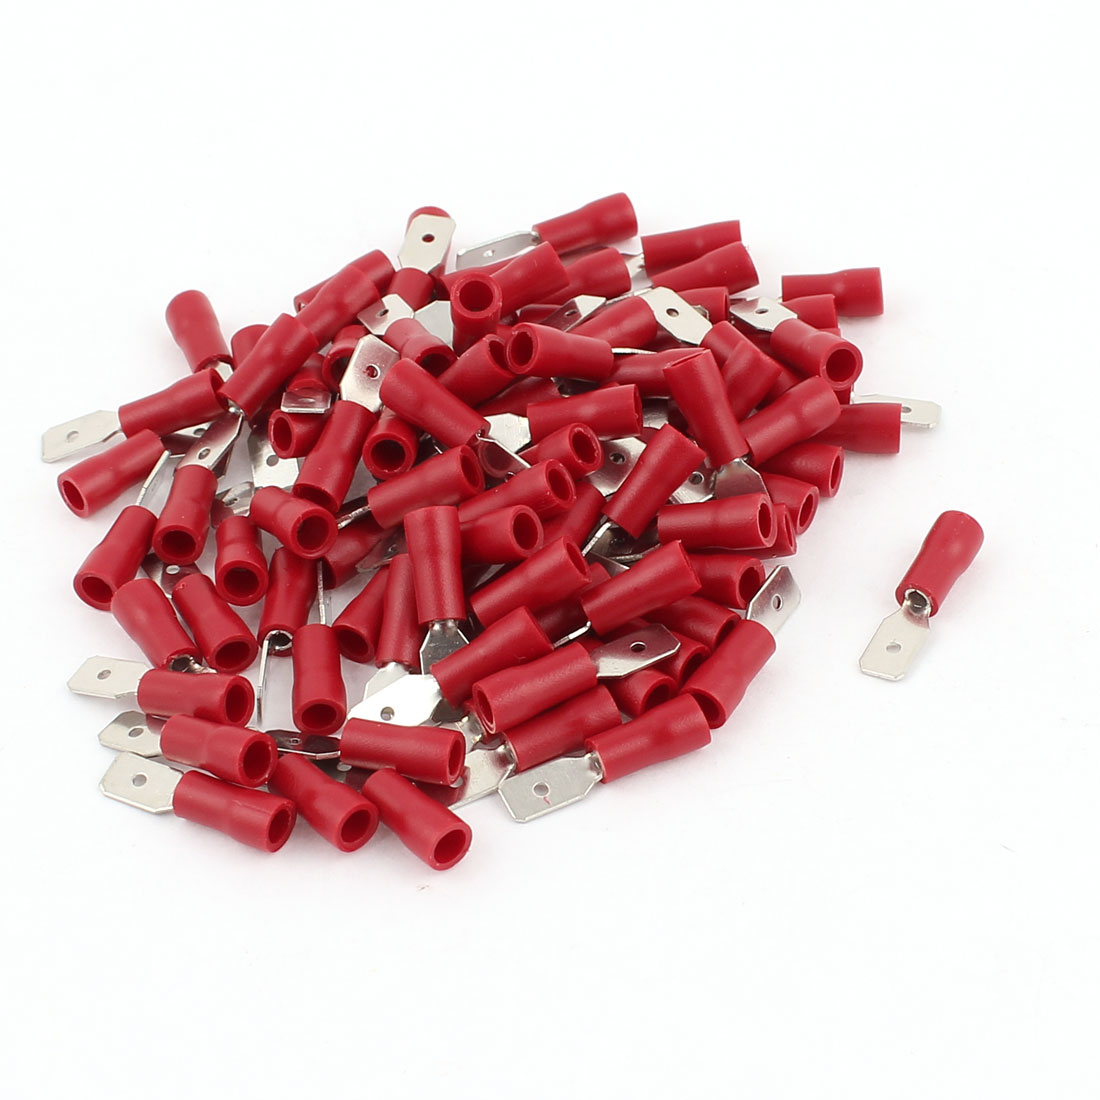 100 Pcs MDD1-187 22-16AWG Wire Connector Insulated Male Crimp Terminals